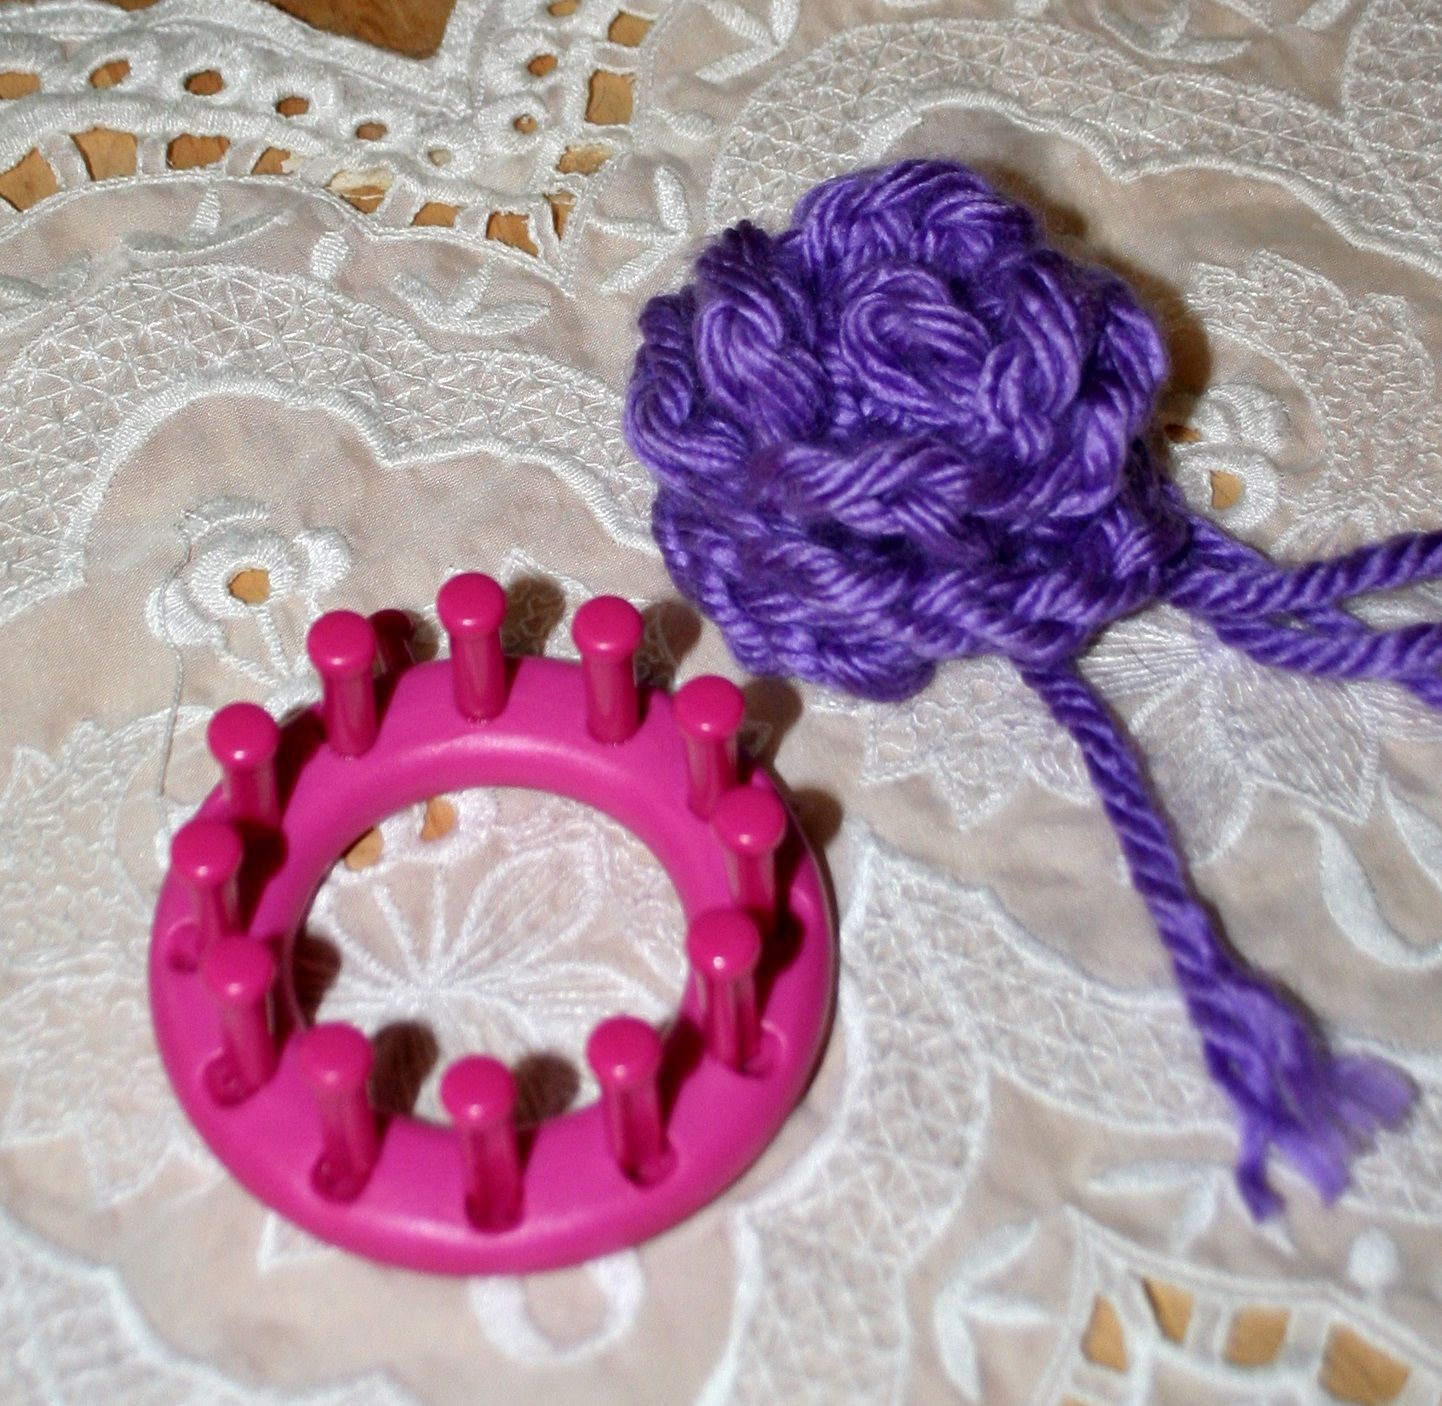 Knitting Flowers On A Loom : Big bulky loom knitting rose made with super chunky yarn